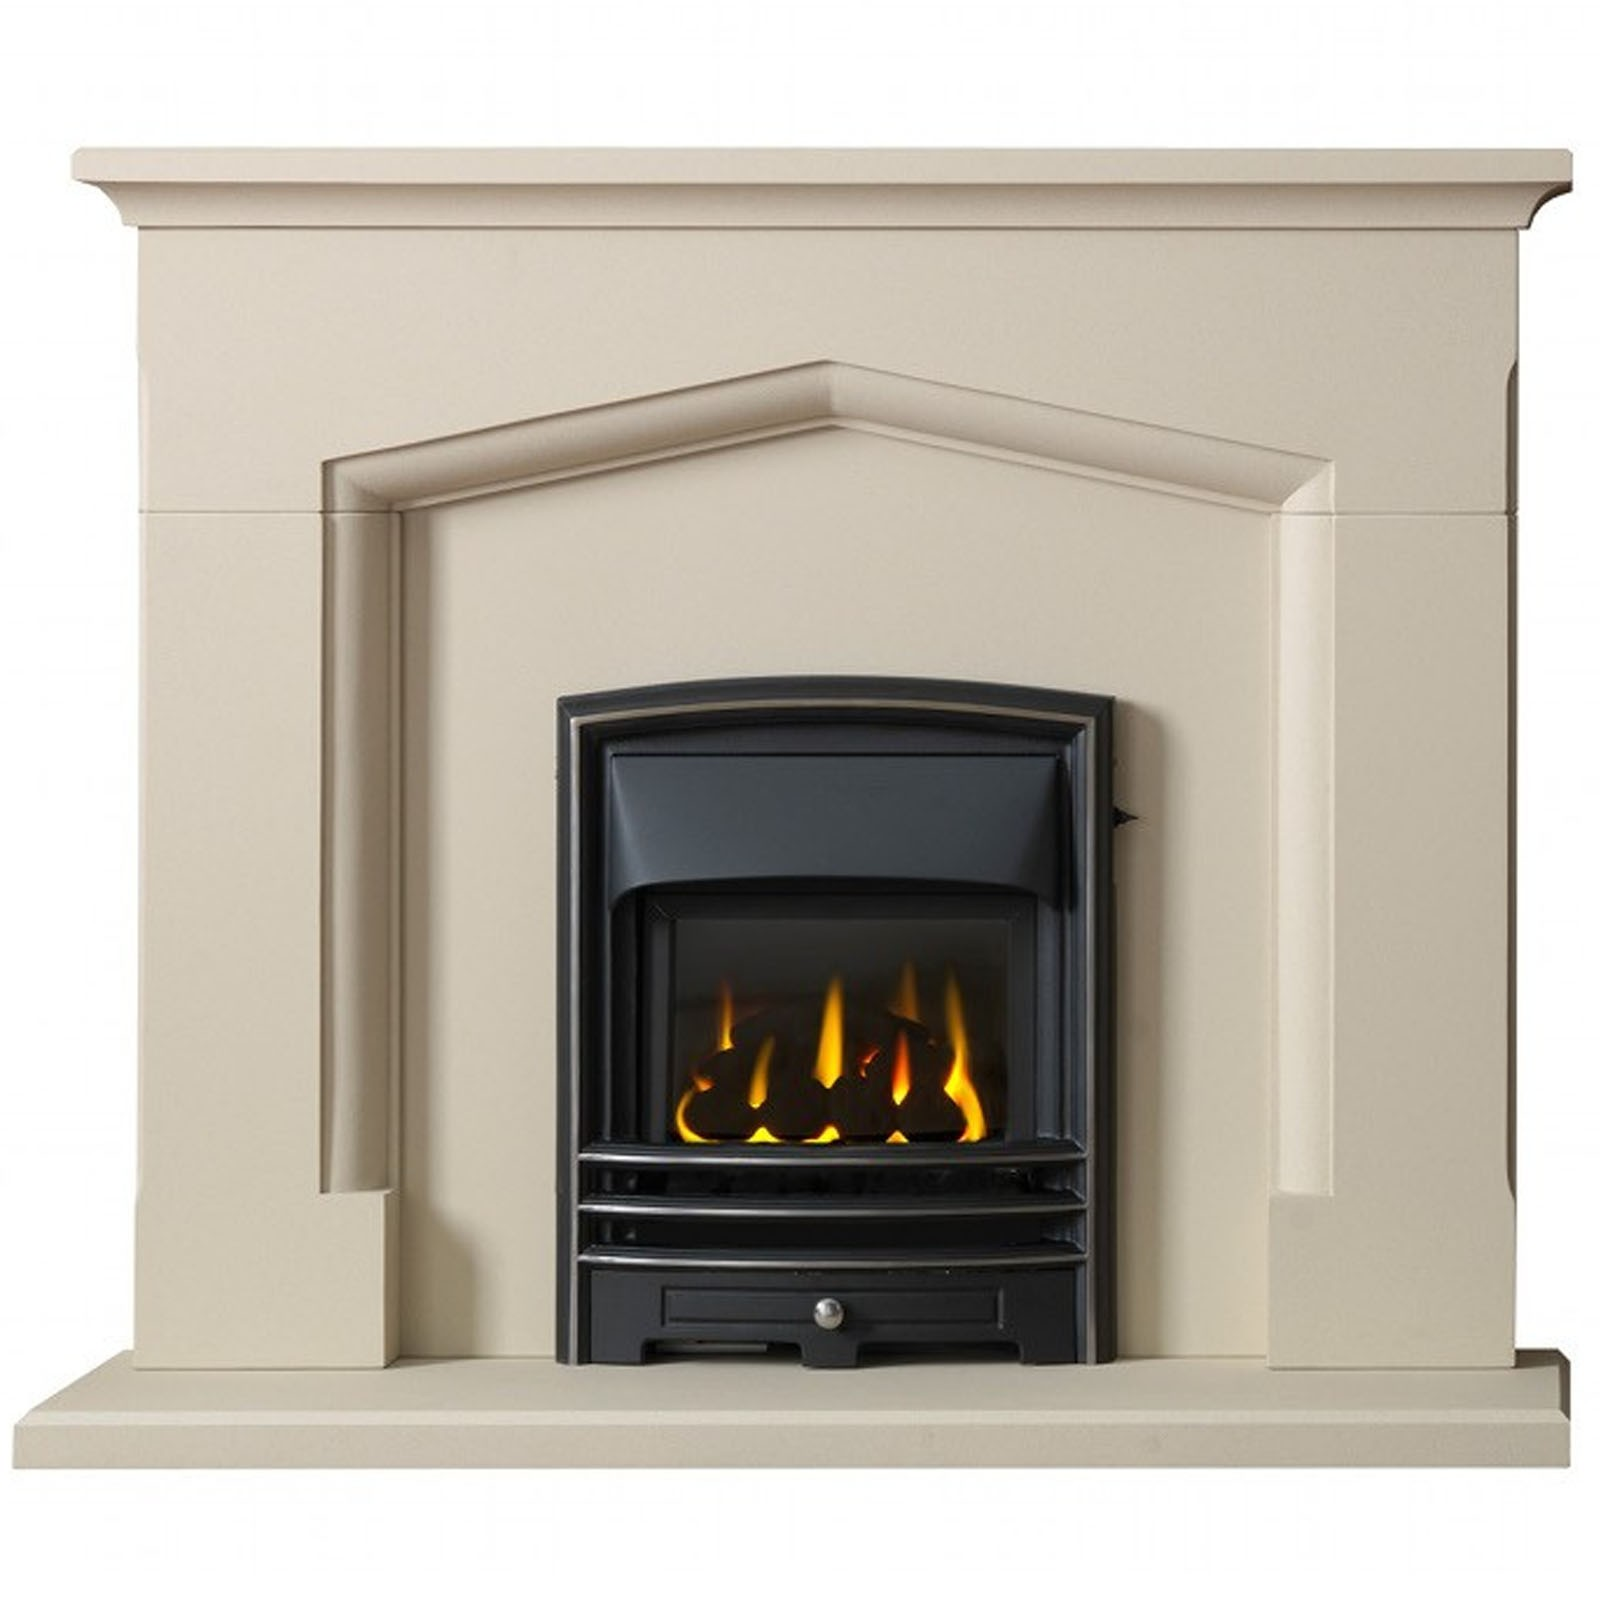 gallery coniston 54 jurastone fireplace suite the gallery rh fireplaces4life co uk Stone Fireplace Gallery By Arizona Tile Fireplace